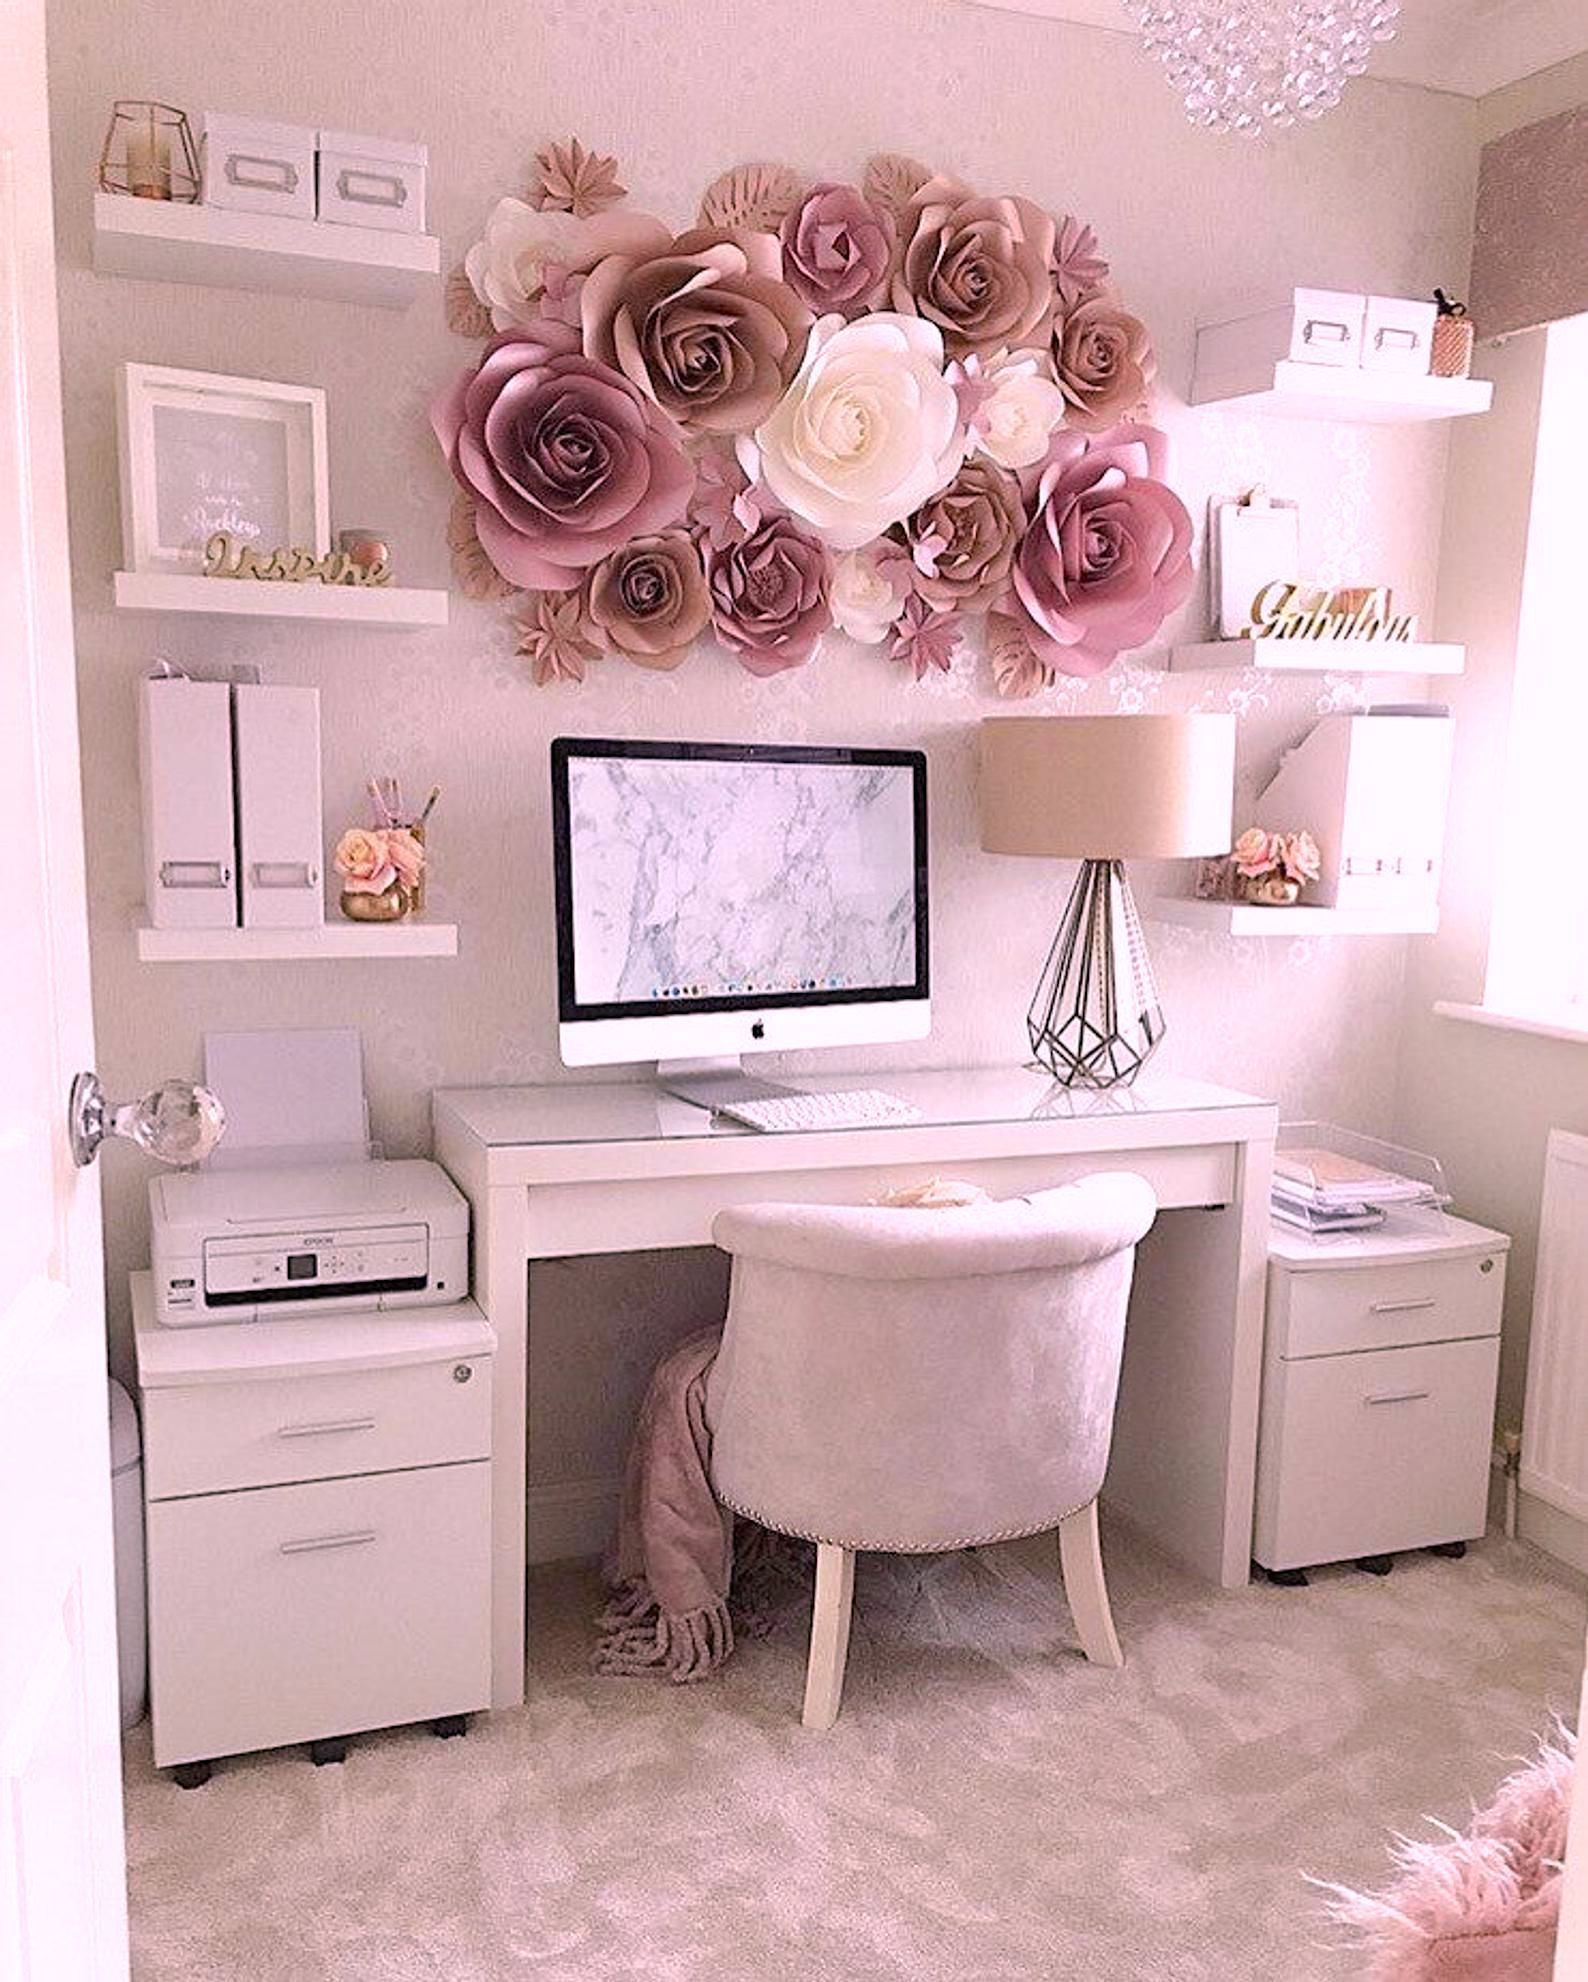 When You Want To Add A Little Comfort And Coziness To Your L El Style In 2020 Paper Flower Wall Decor Feminine Home Offices Home Office Decor